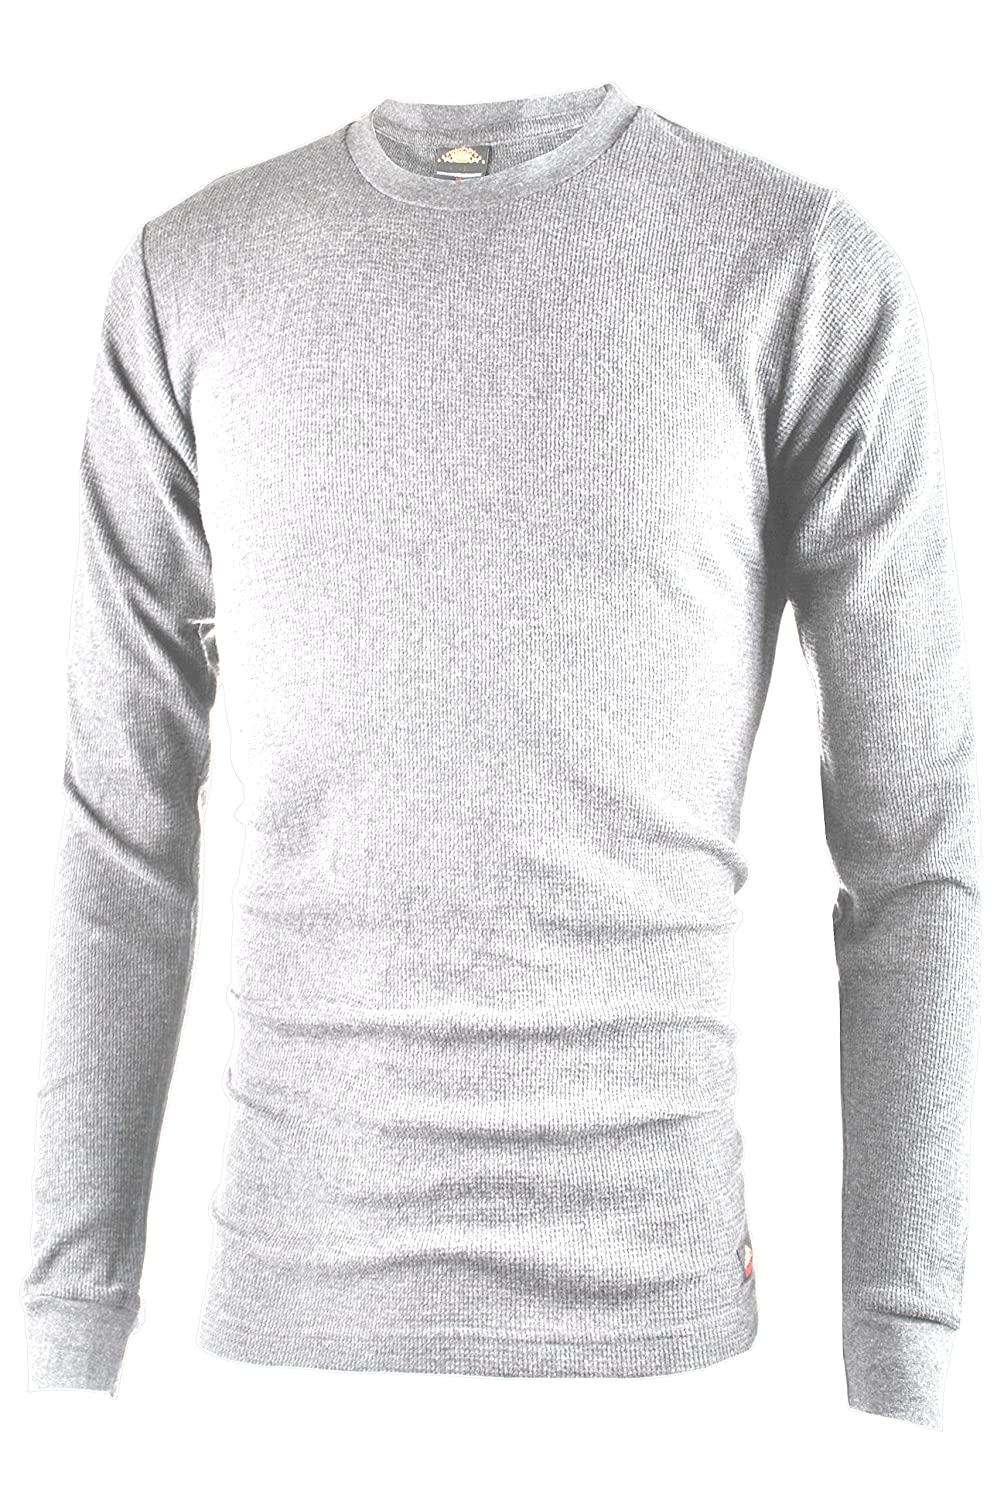 Ollie Arnes Men's Long Sleeve Heavy Warm Thermal Crew Neck Shirt 100% Cotton Top